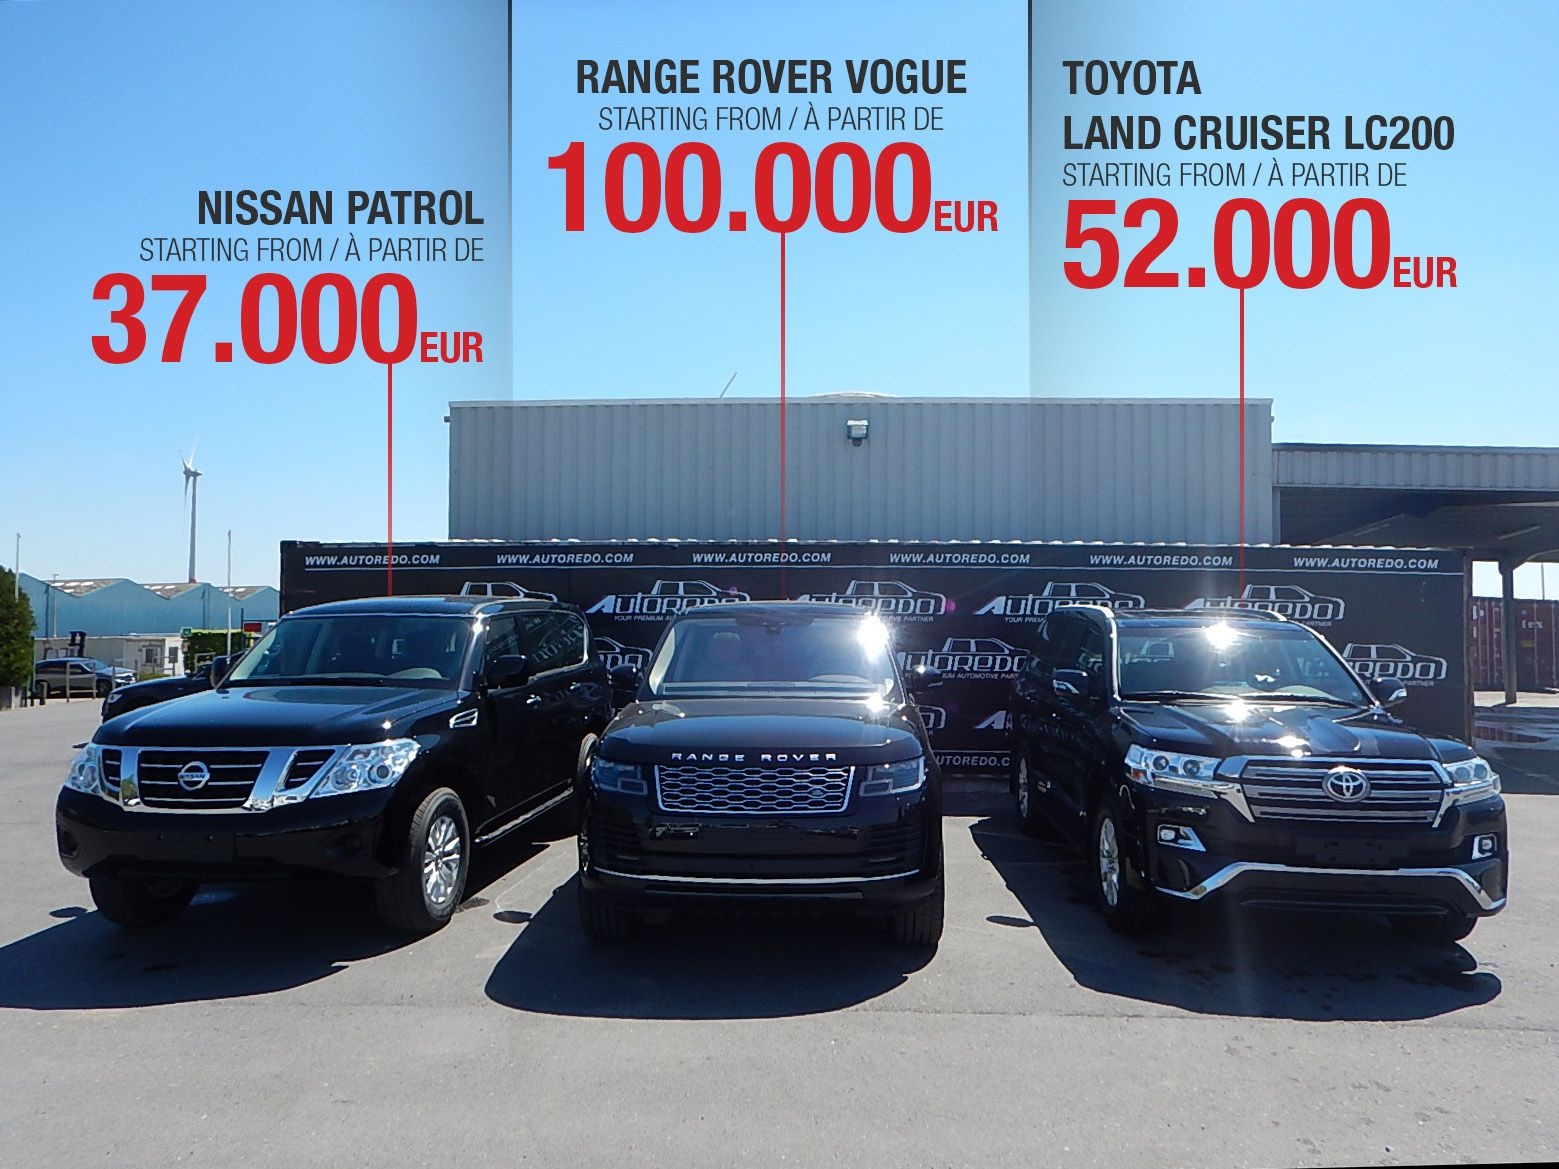 Make Your Choice Nissan Patrol Range Rover Toyota Lc200 Many Trims Available Discover Wich One Will Be Your Www Nissan Patrol Range Rover Toyota Lc200